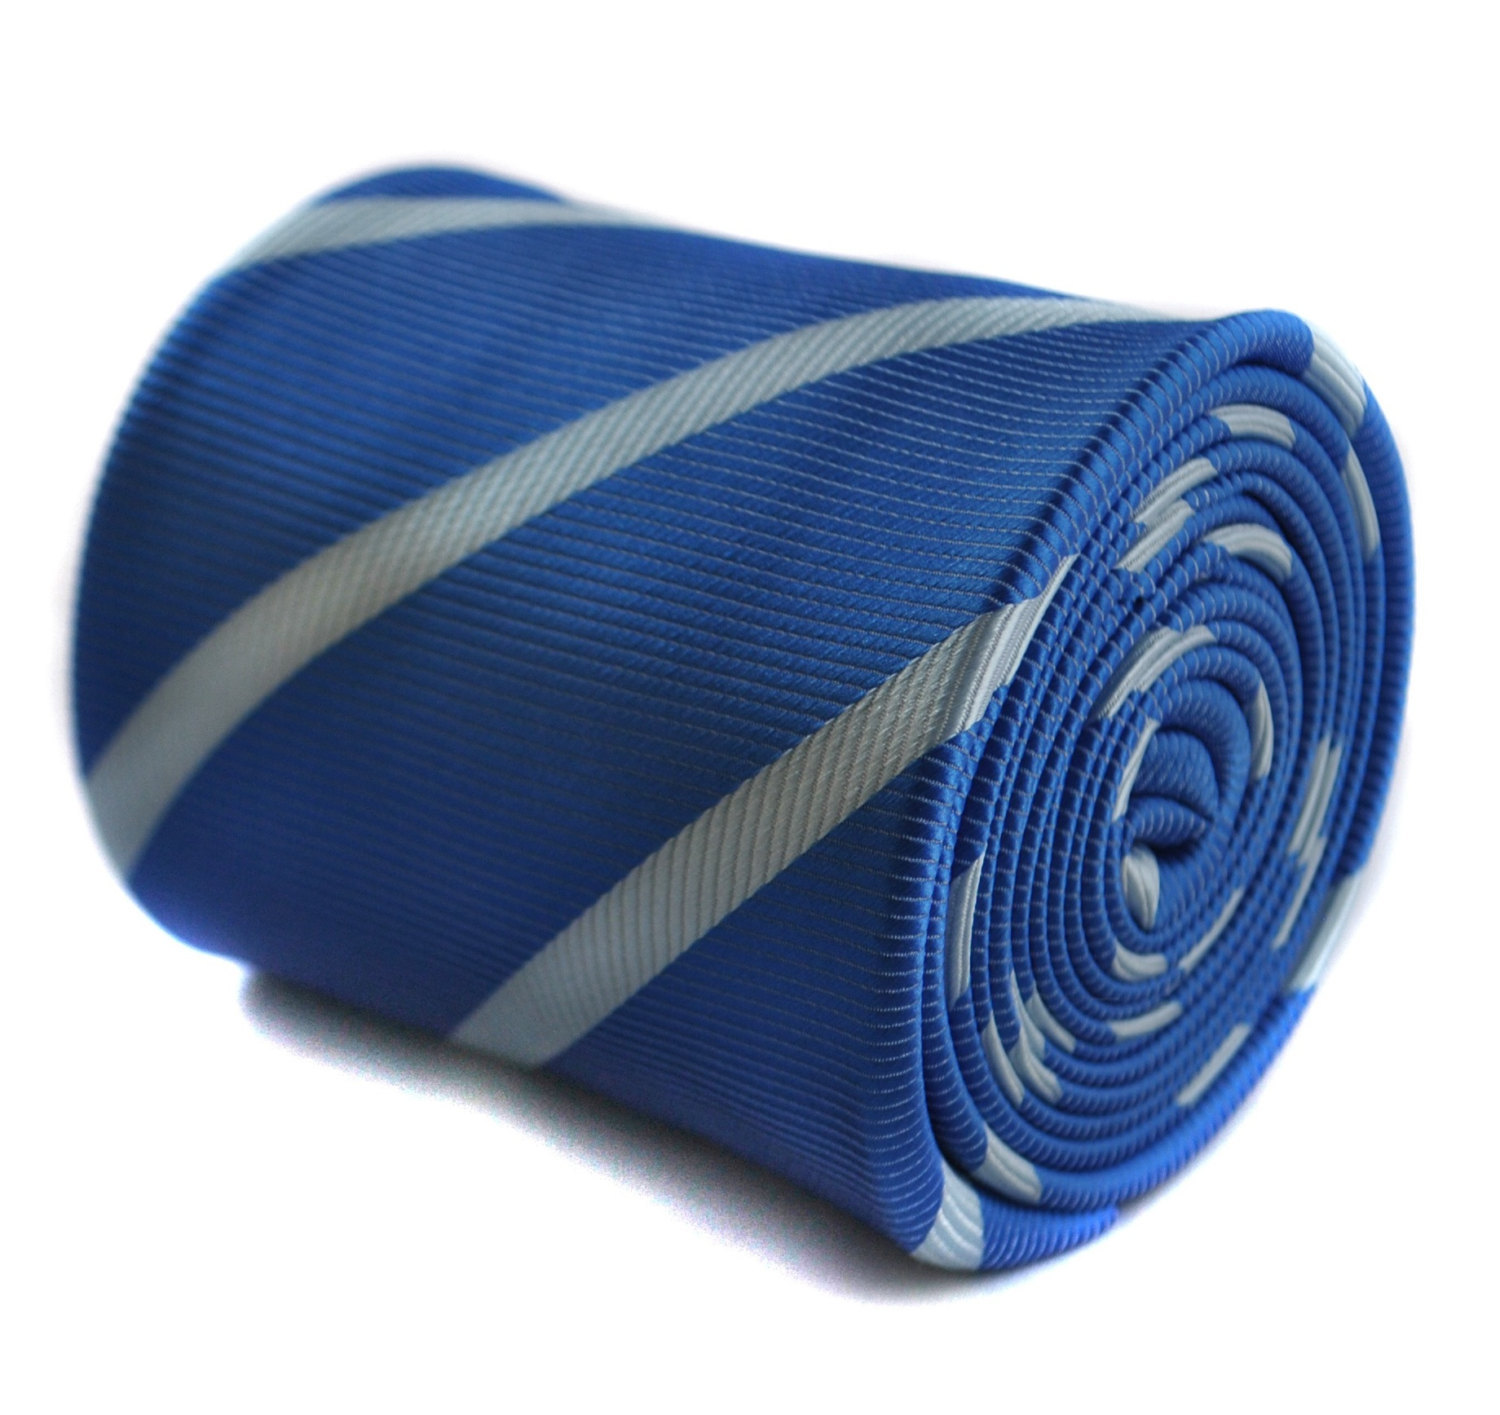 royal blue and light blue club tie with floral design to the rear by Frederick T